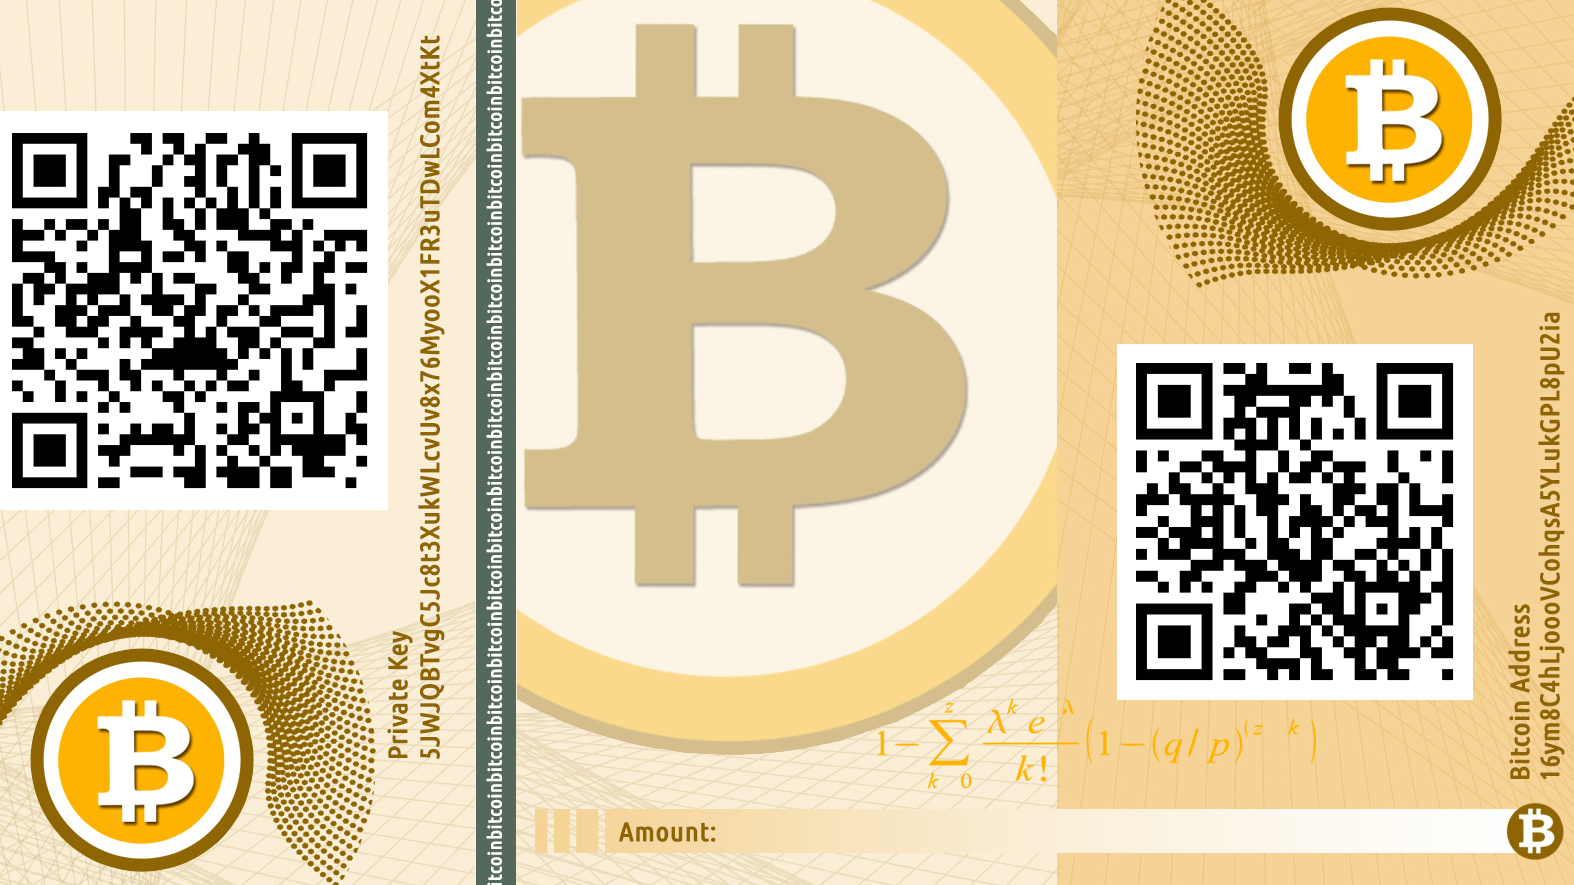 bitcoin banknote shorting bitcoins